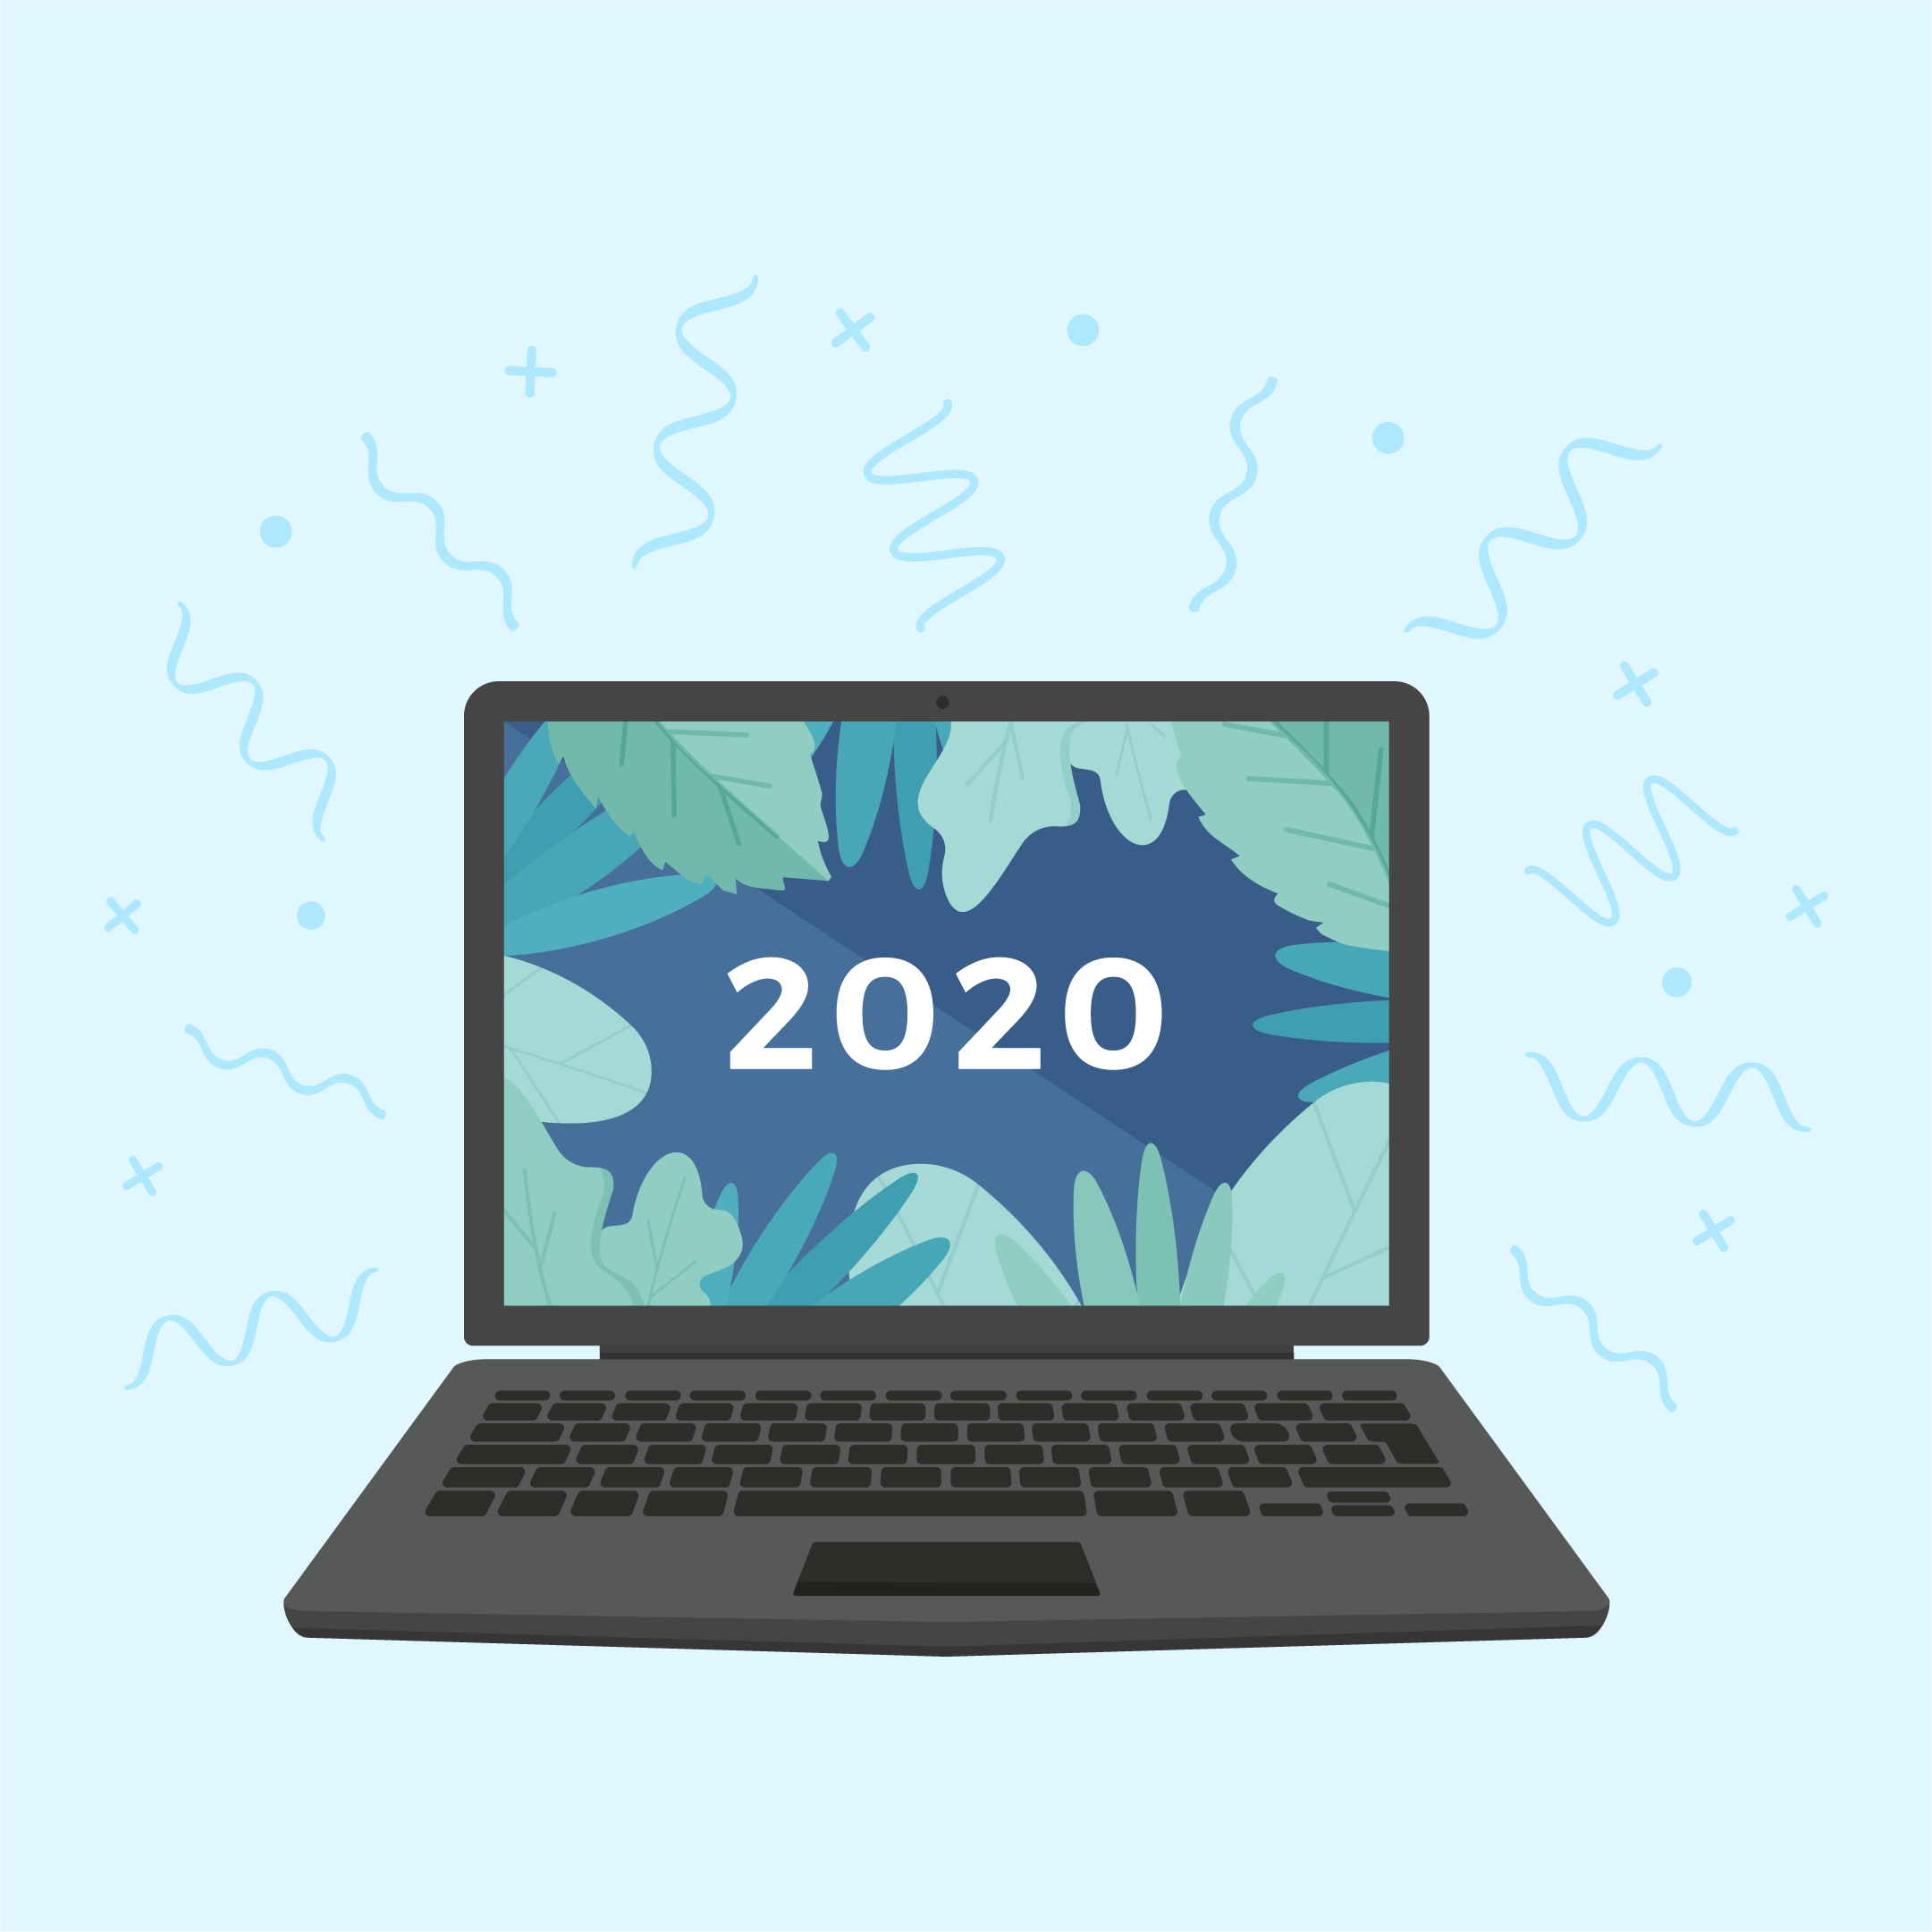 Vector illustration of a black laptop with 2020 & plants on the screen with fireworks around it in flat design style